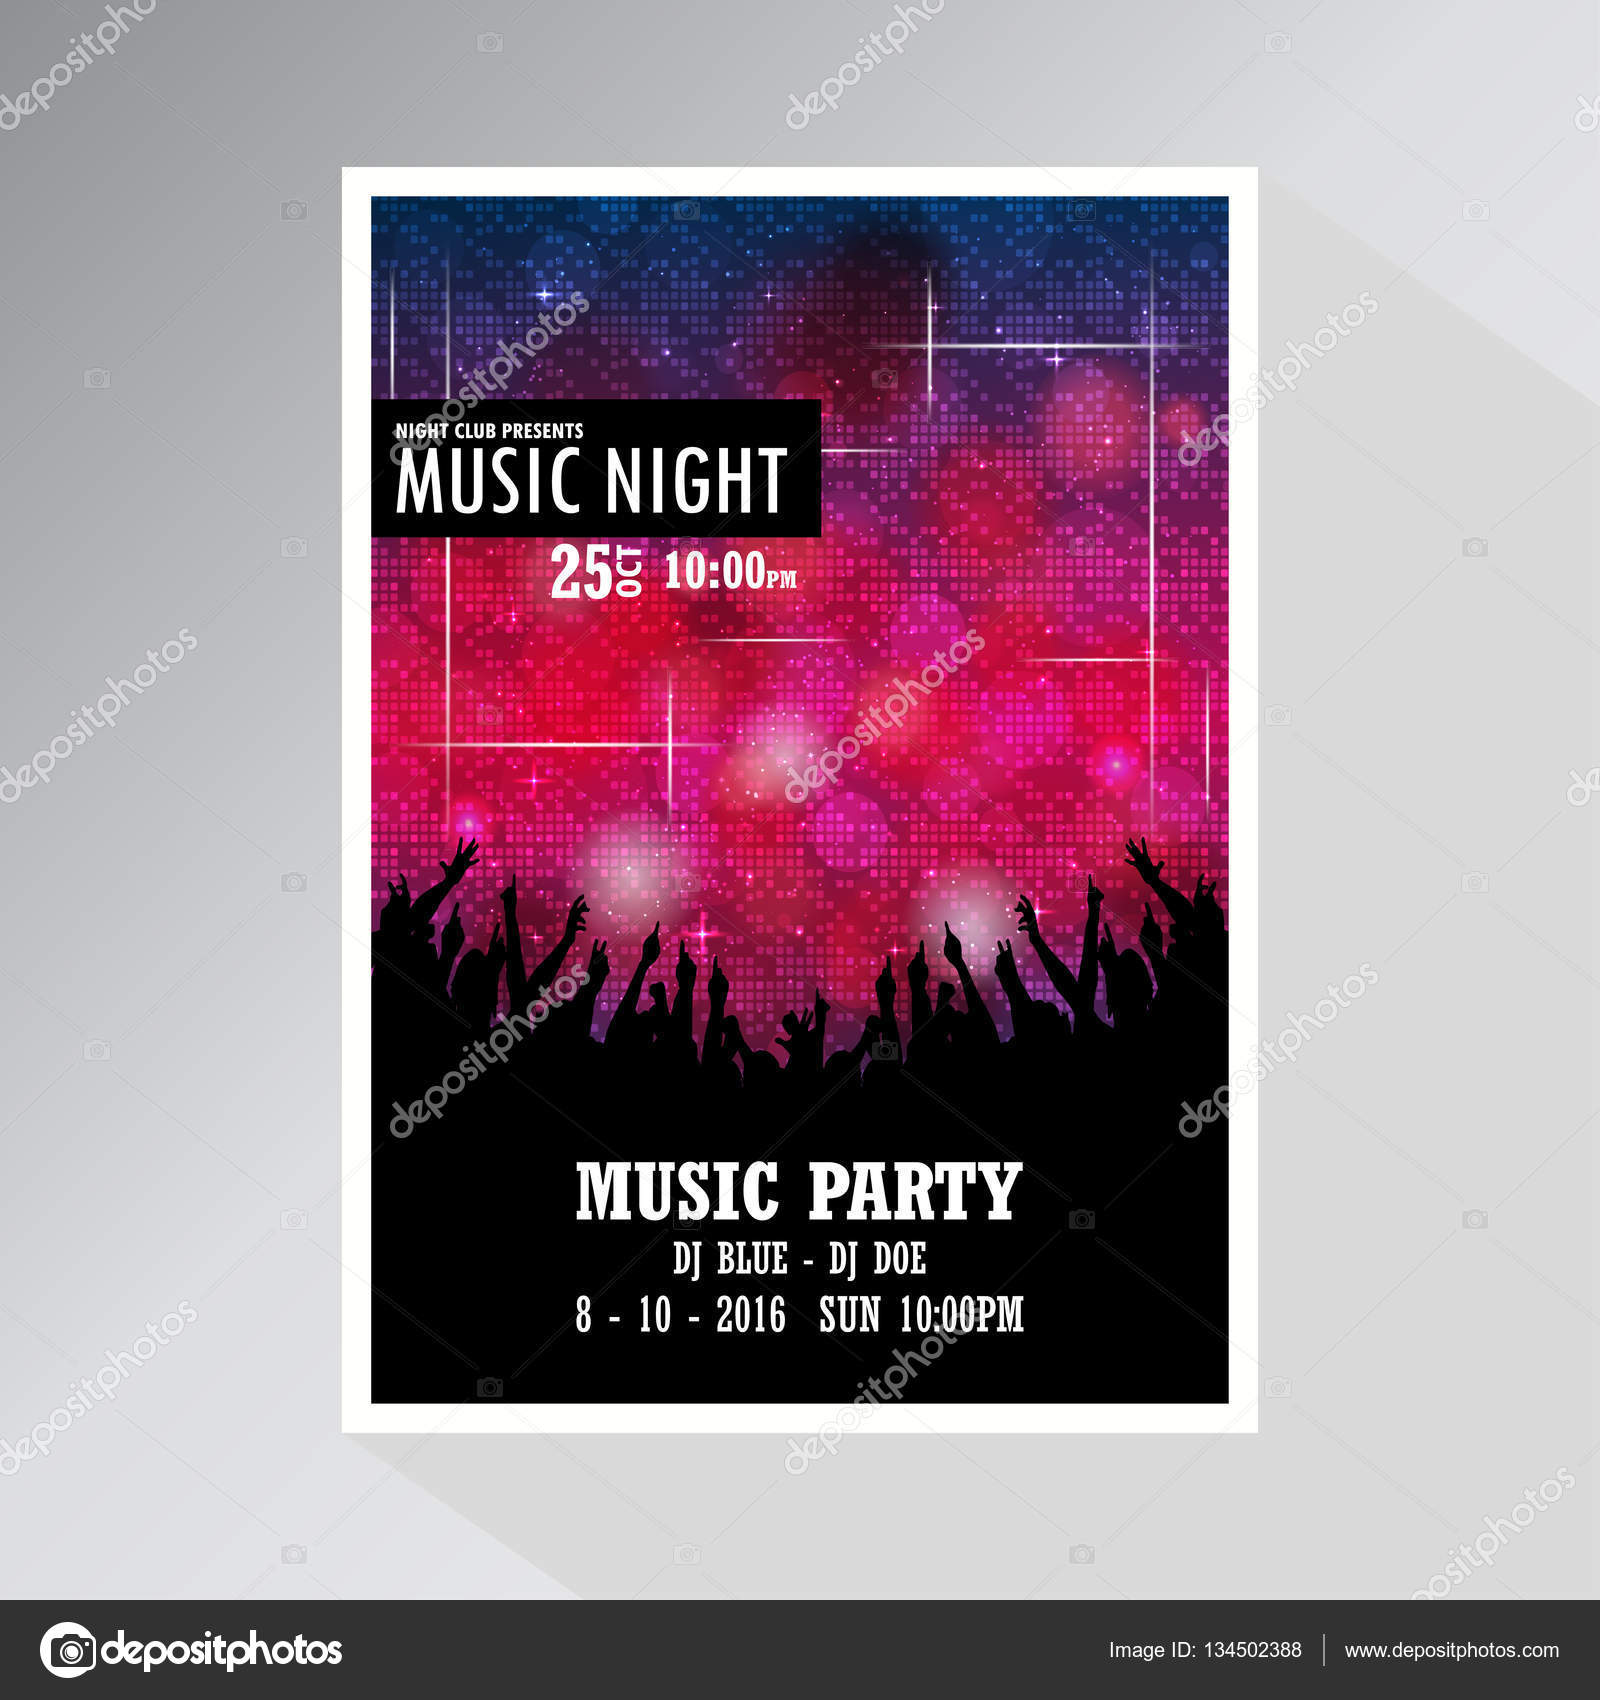 Music party invitation card stock vector ibrandify 134502388 music party invitation card stock vector stopboris Image collections